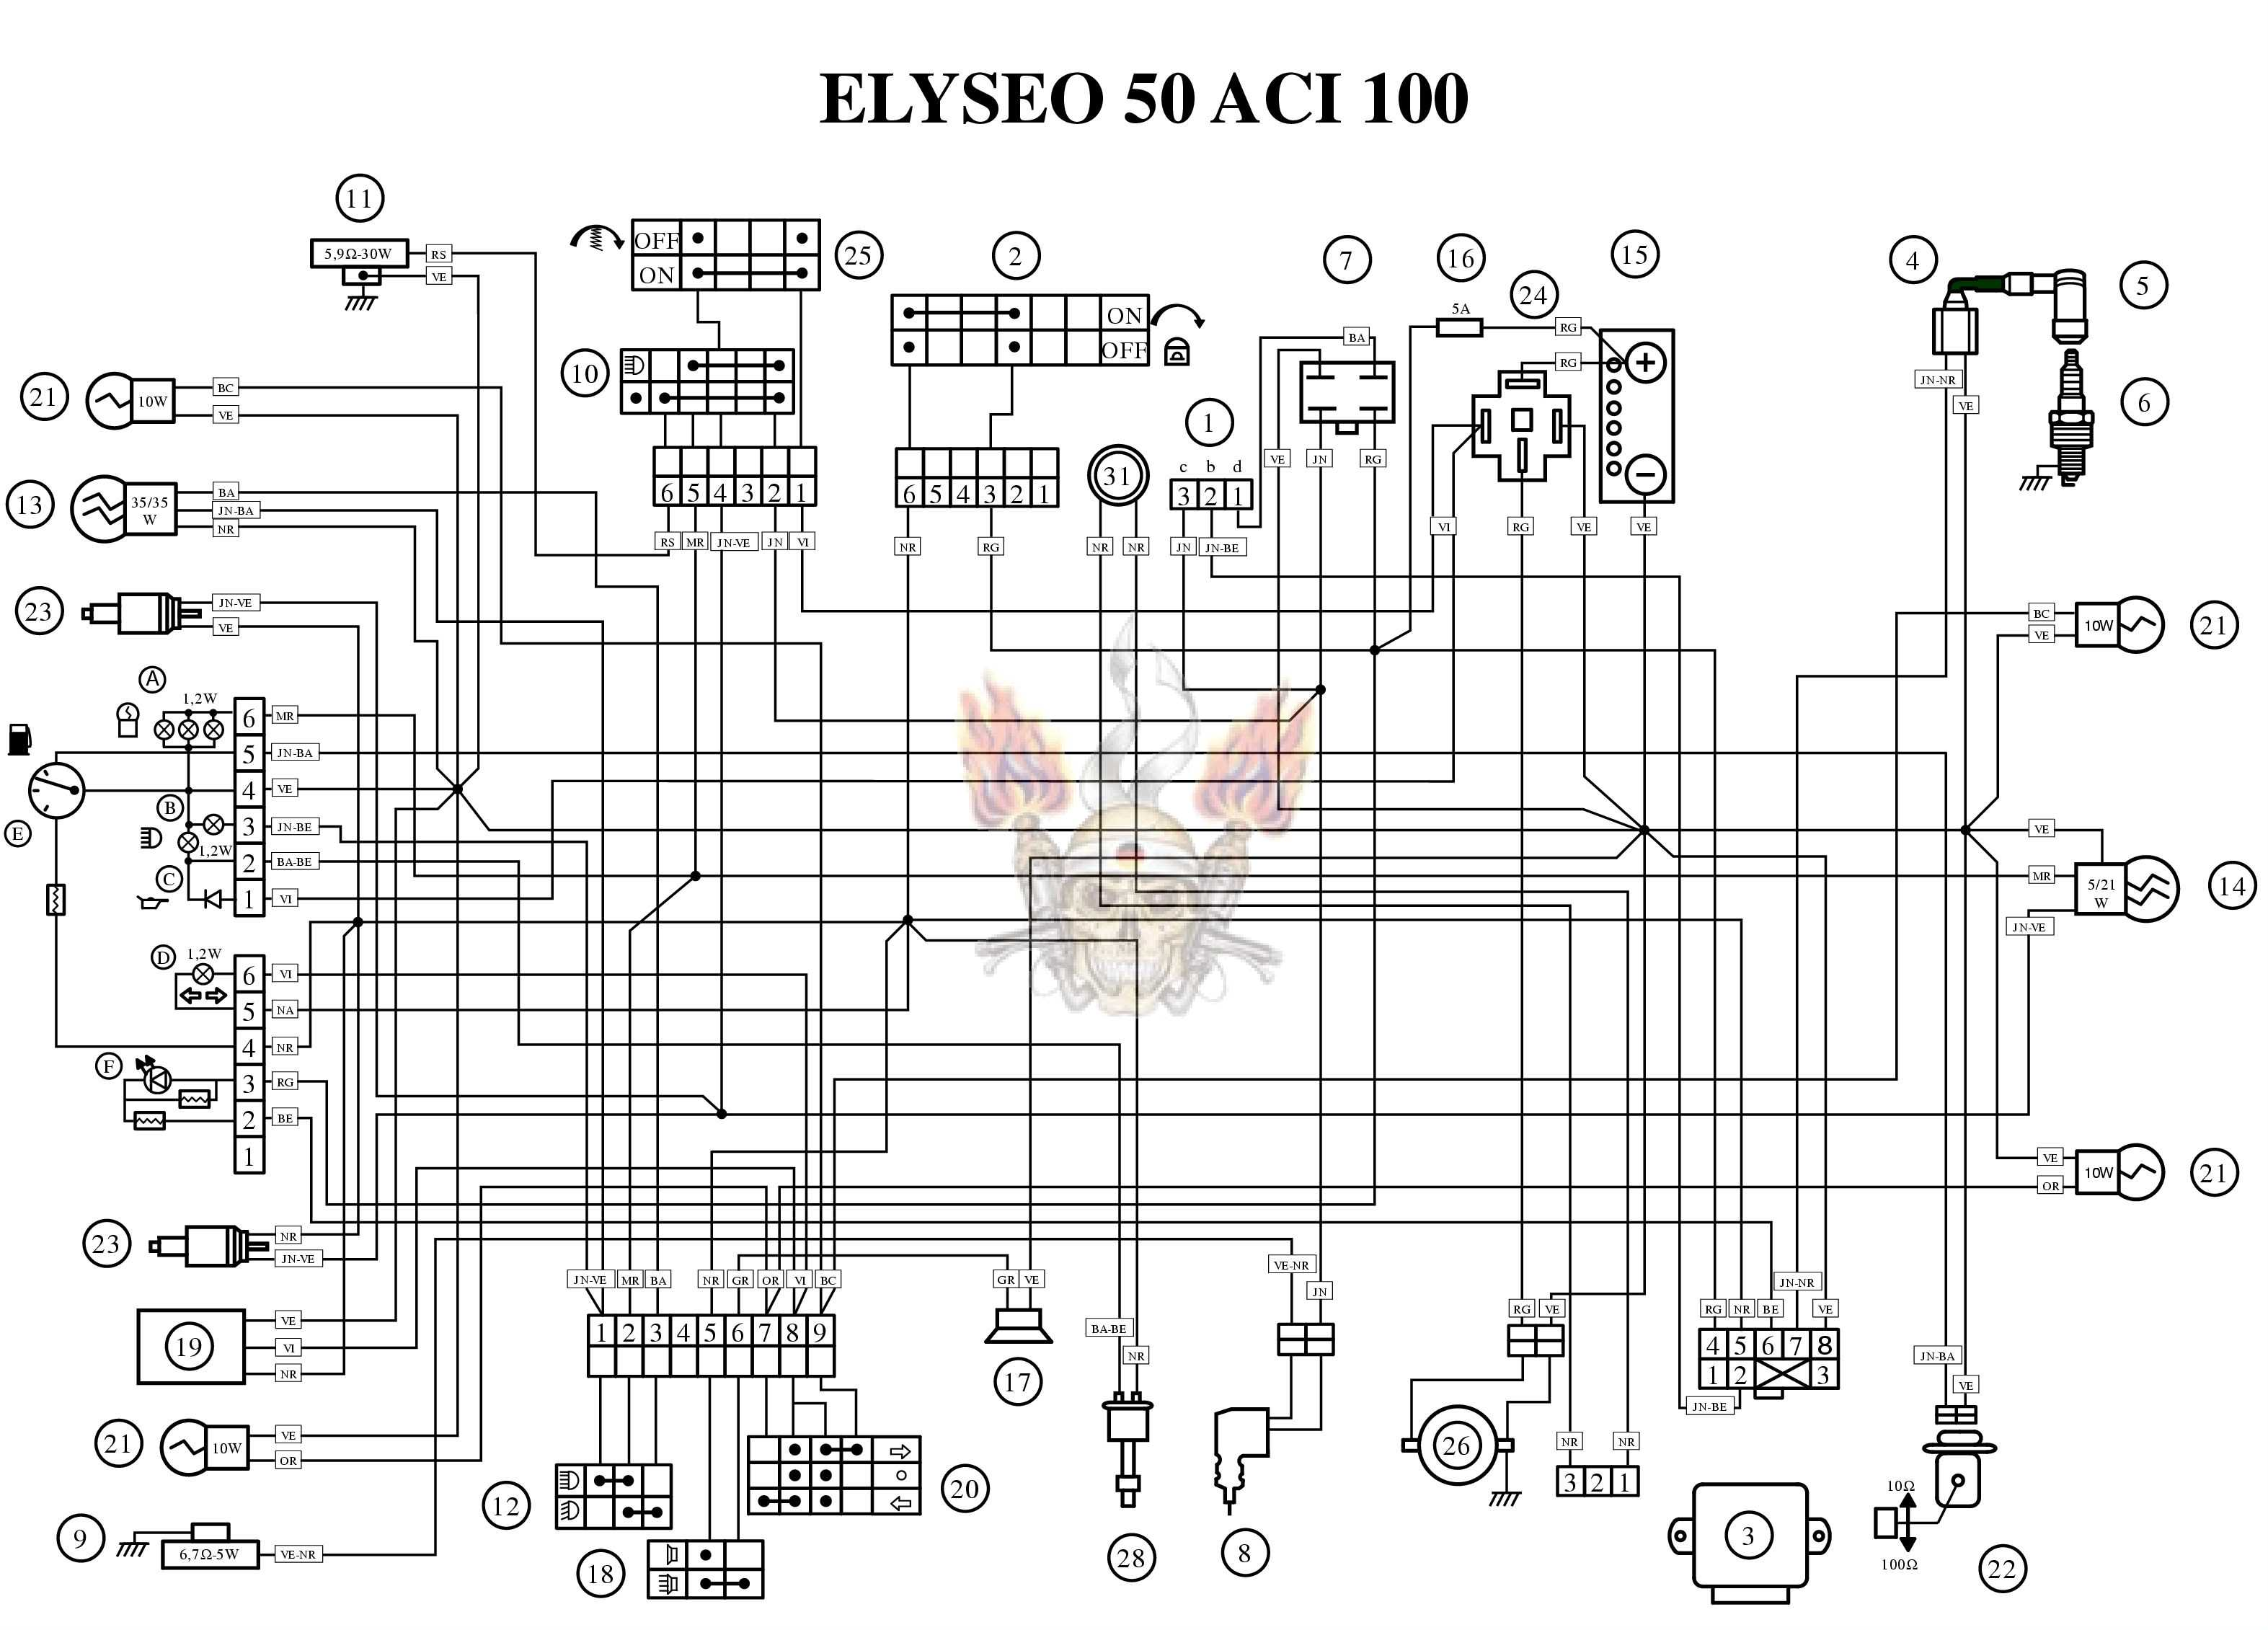 Peugeot 406 V6 Wiring Diagram Library 107 Diagrams Comfortable Pictures Inspiration 2261